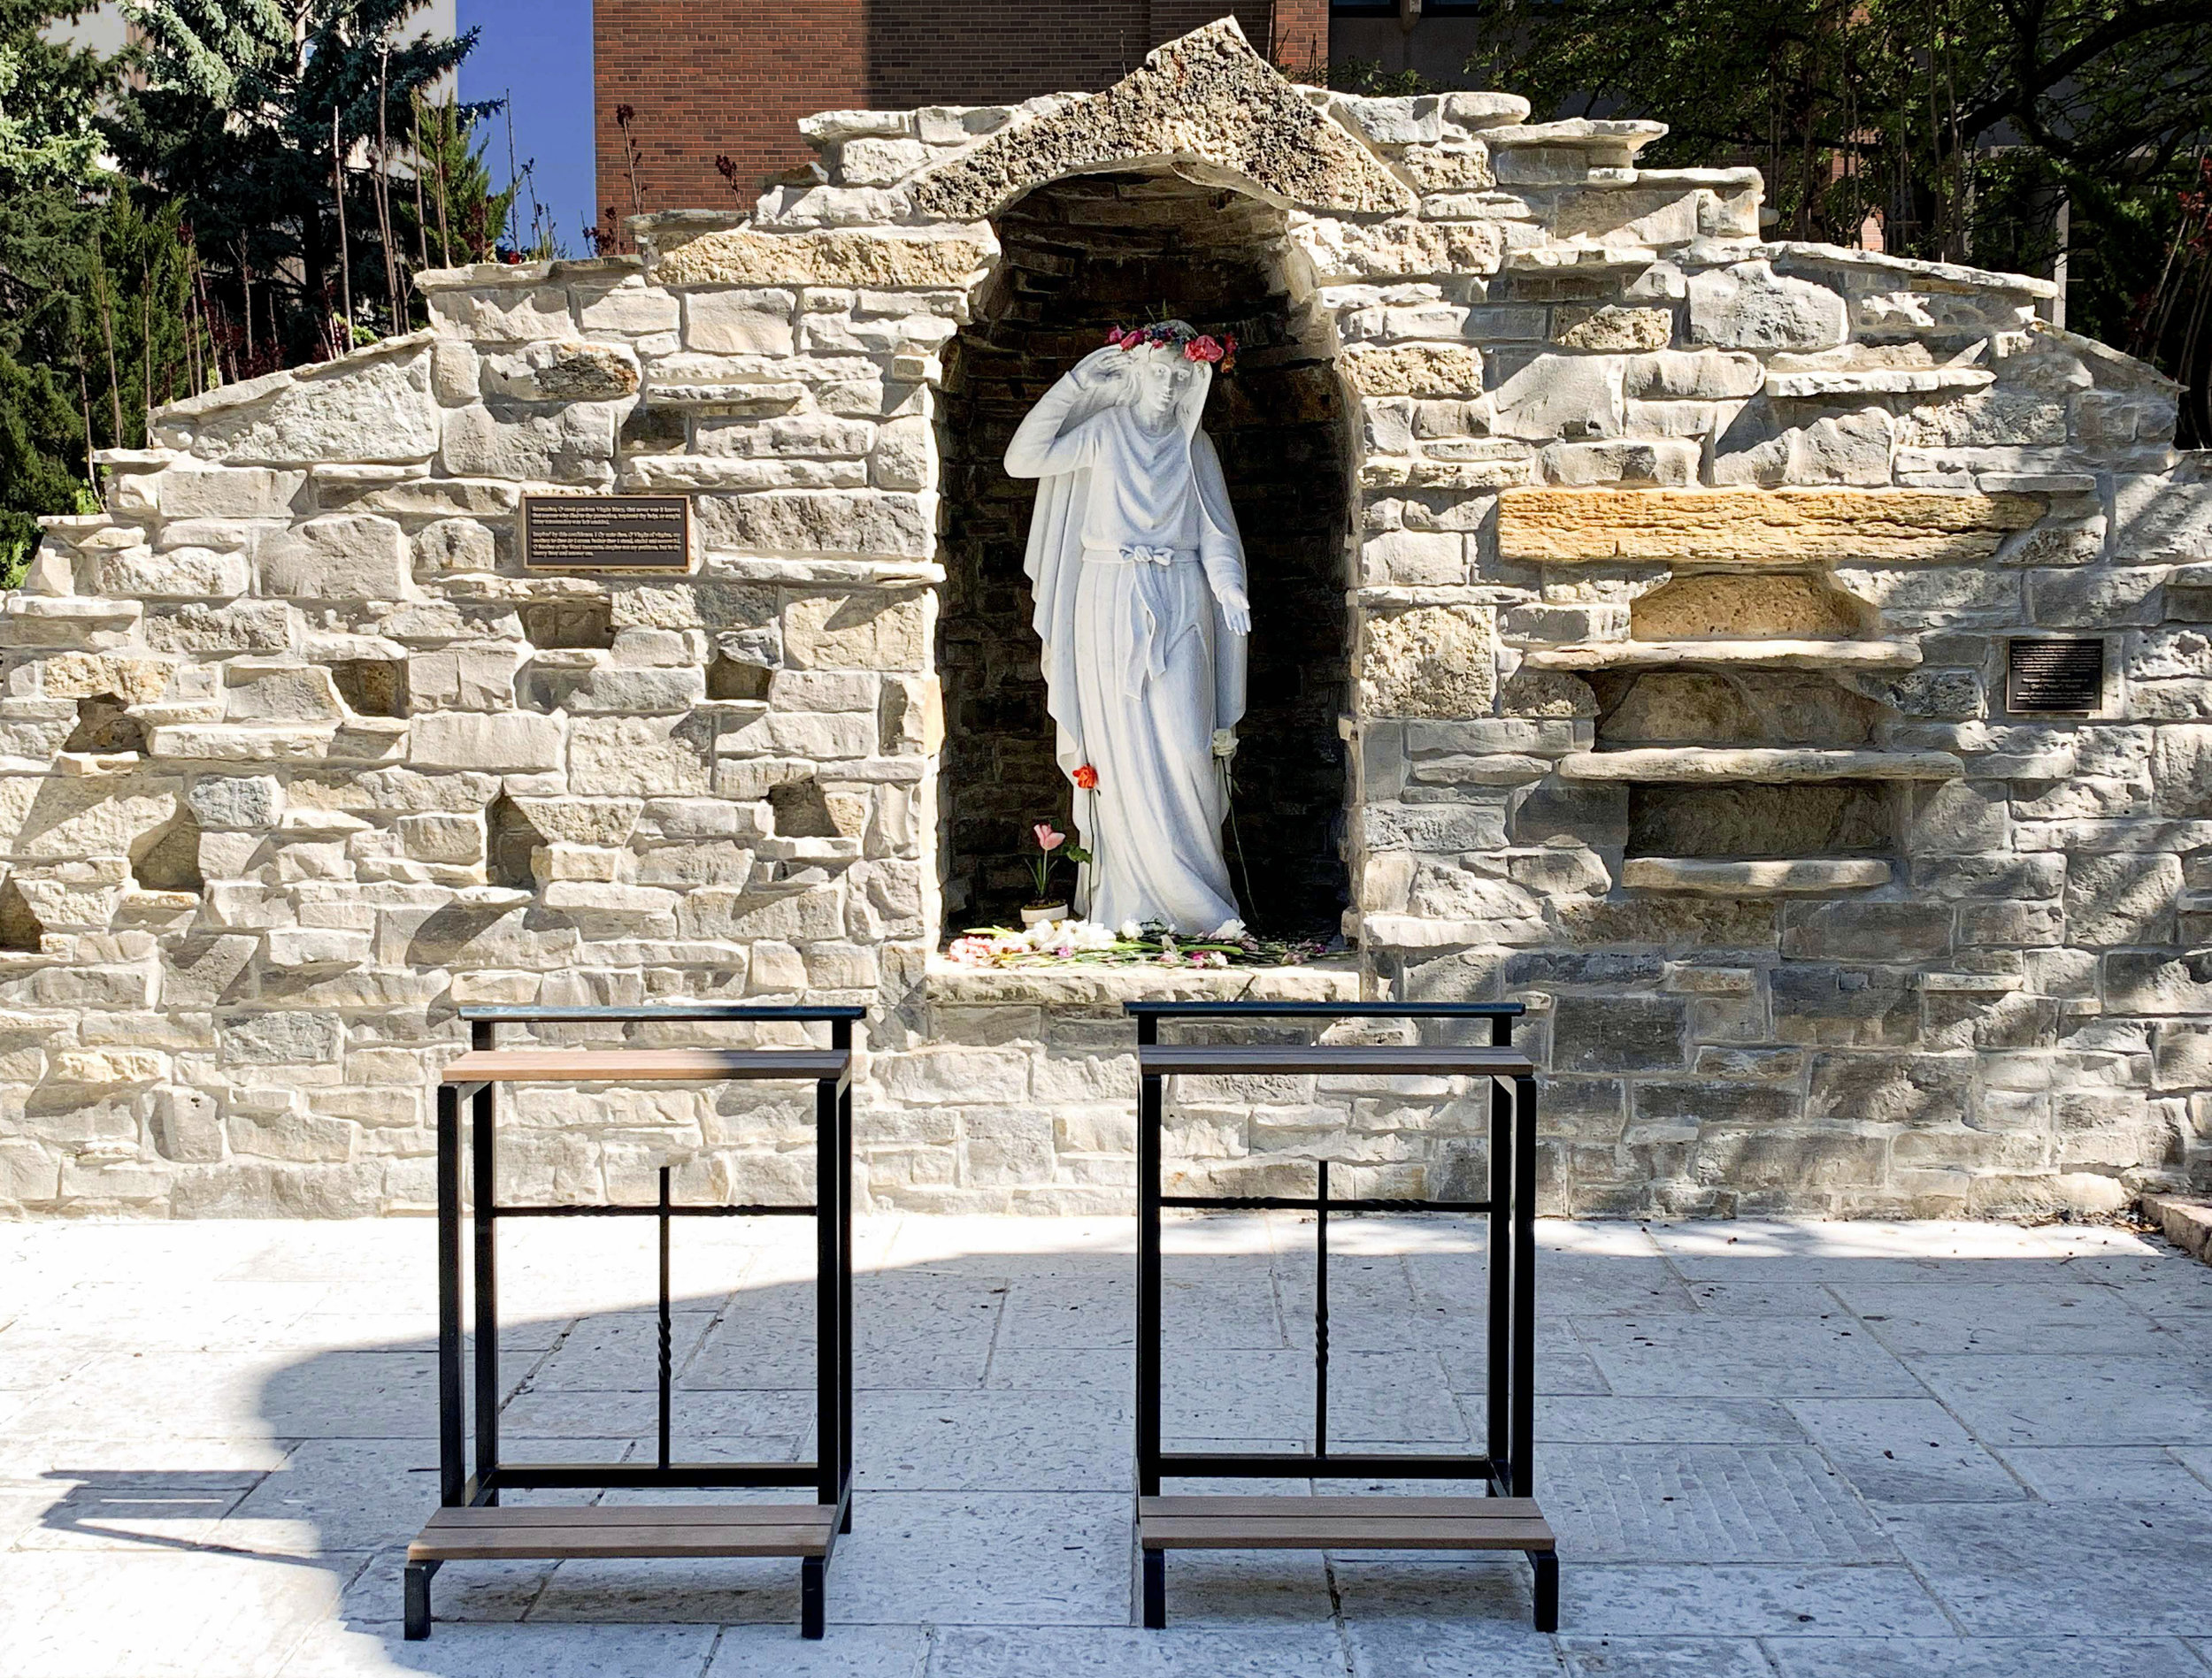 This beautiful  Grotto of the Blessed Virgin , behind  Saint Joan of Arc Chapel  on the Marquette University campus, was dedicated earlier this year to honor  Our Lady of Lourdes . The sacred space reminds us that our Blessed Mother always hears our prayers.